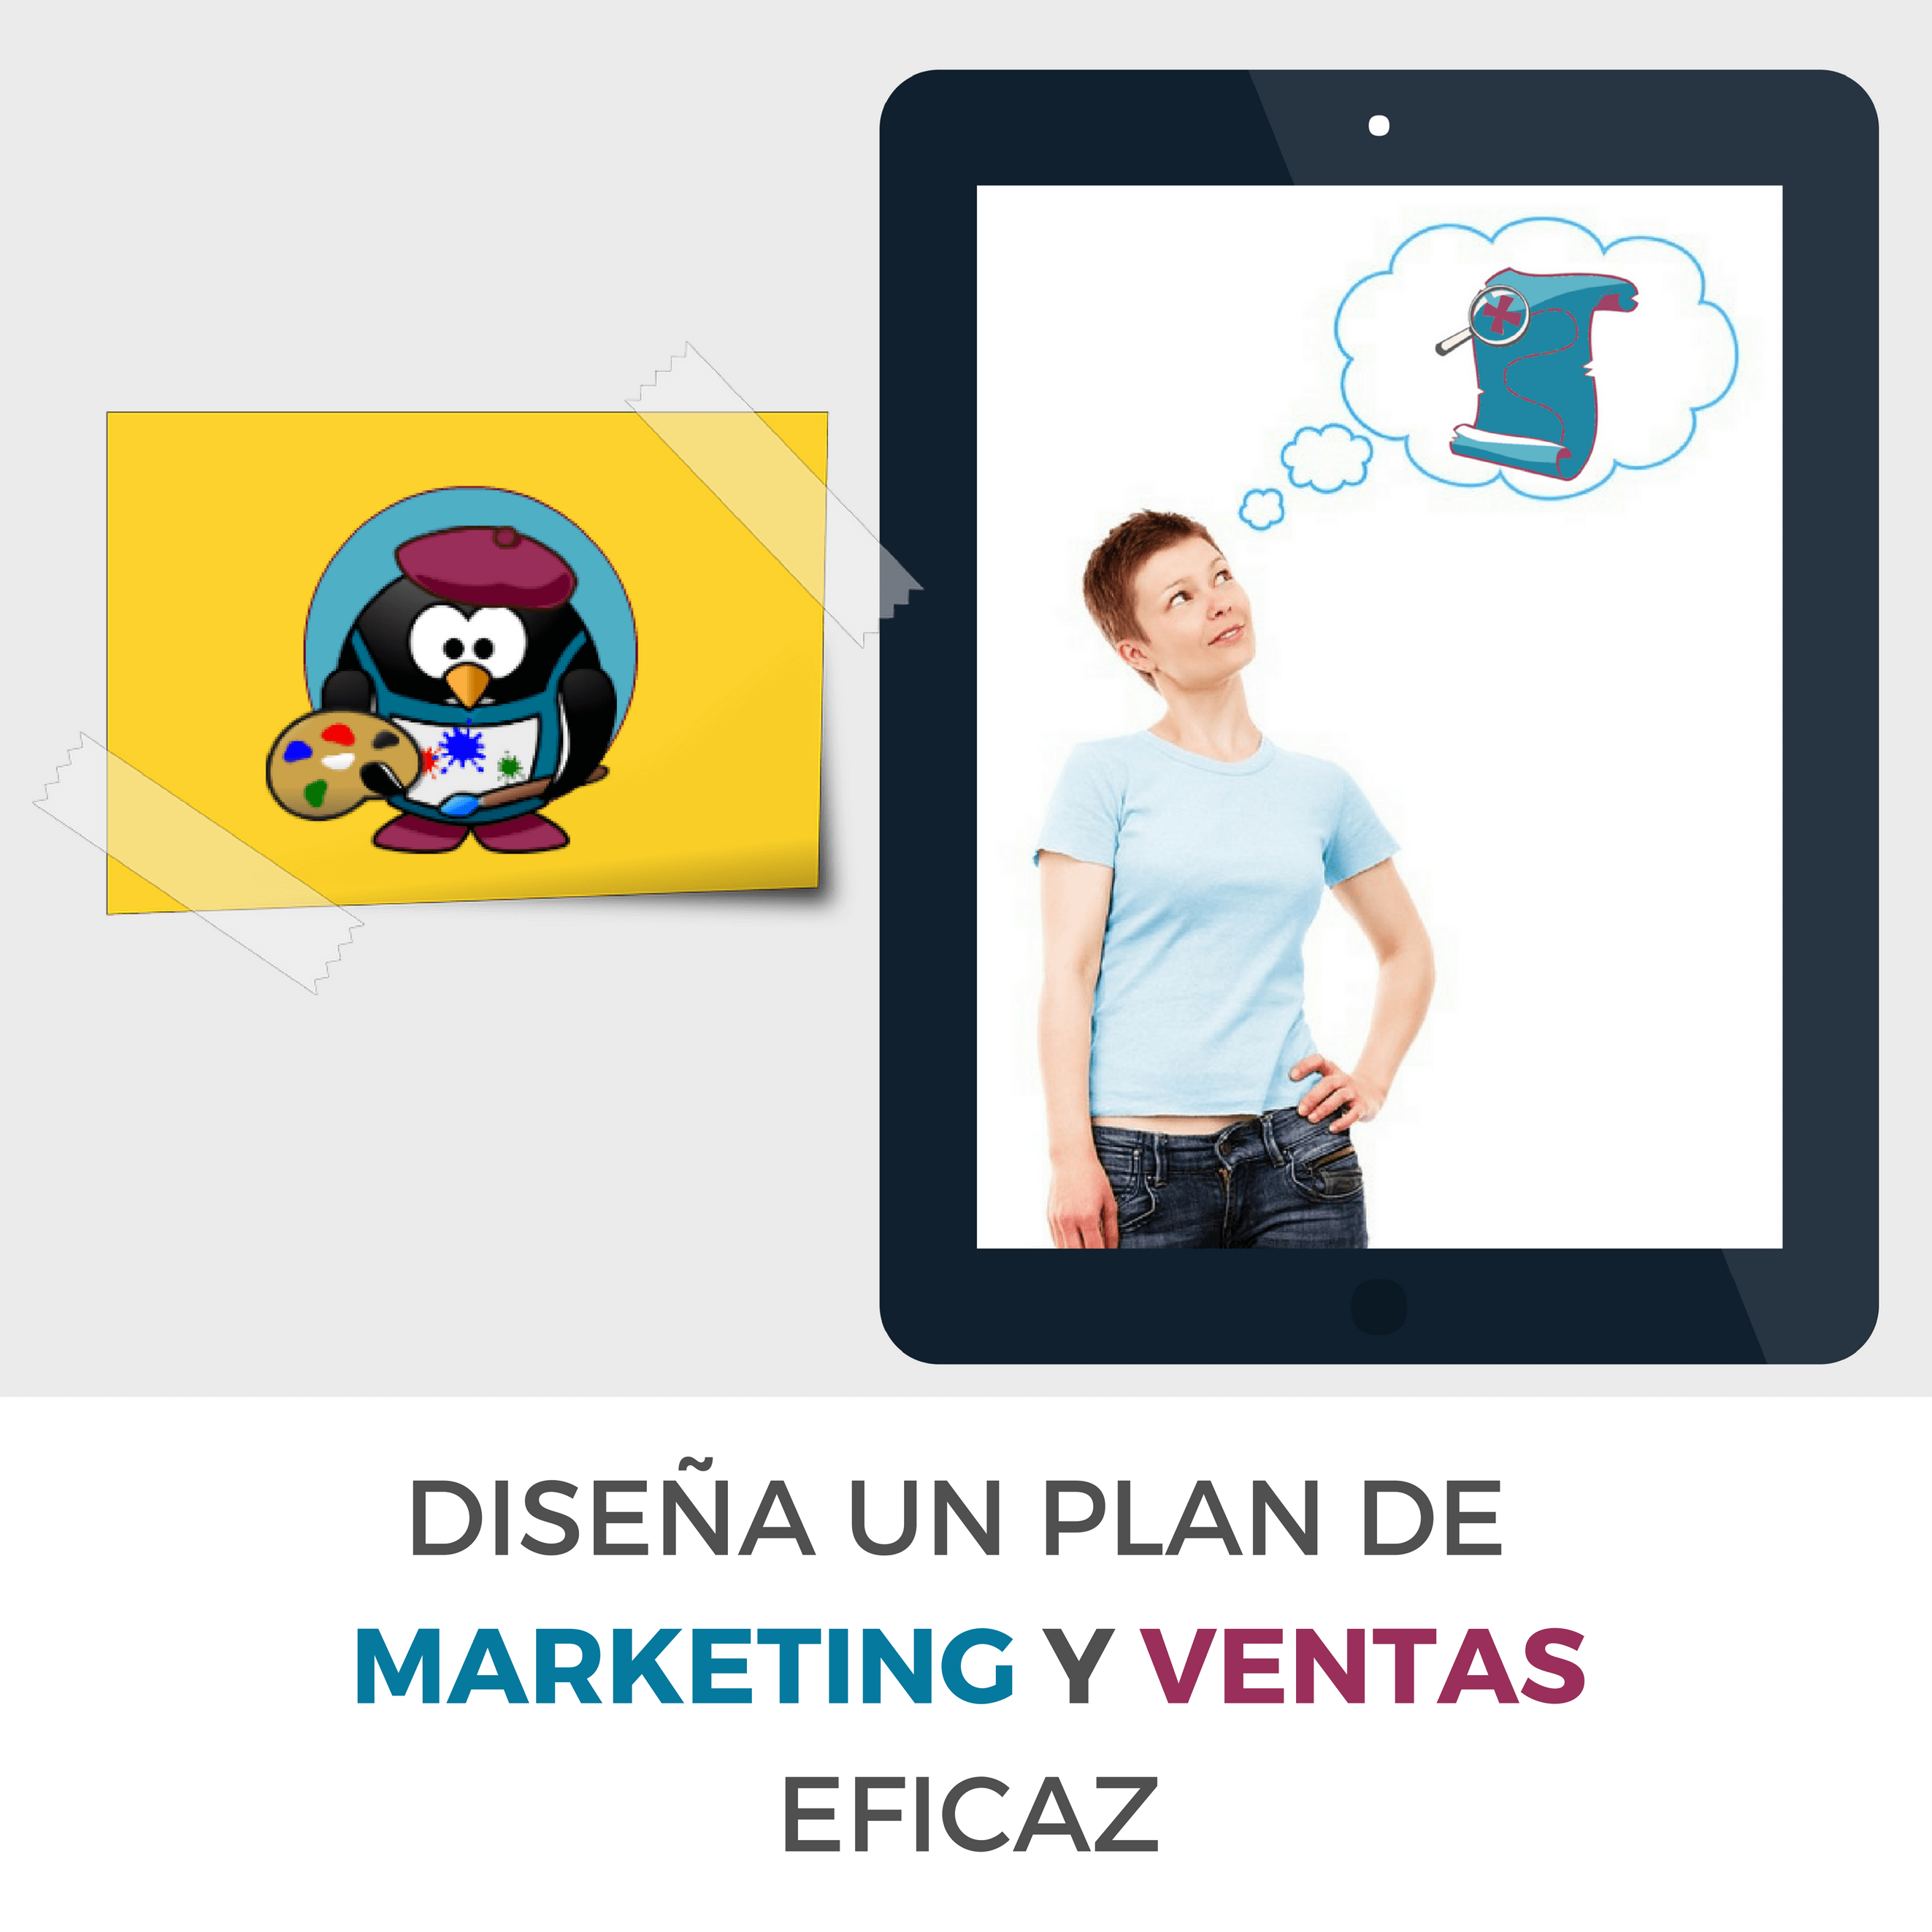 Diseña un plan de marketing y ventas estratégico